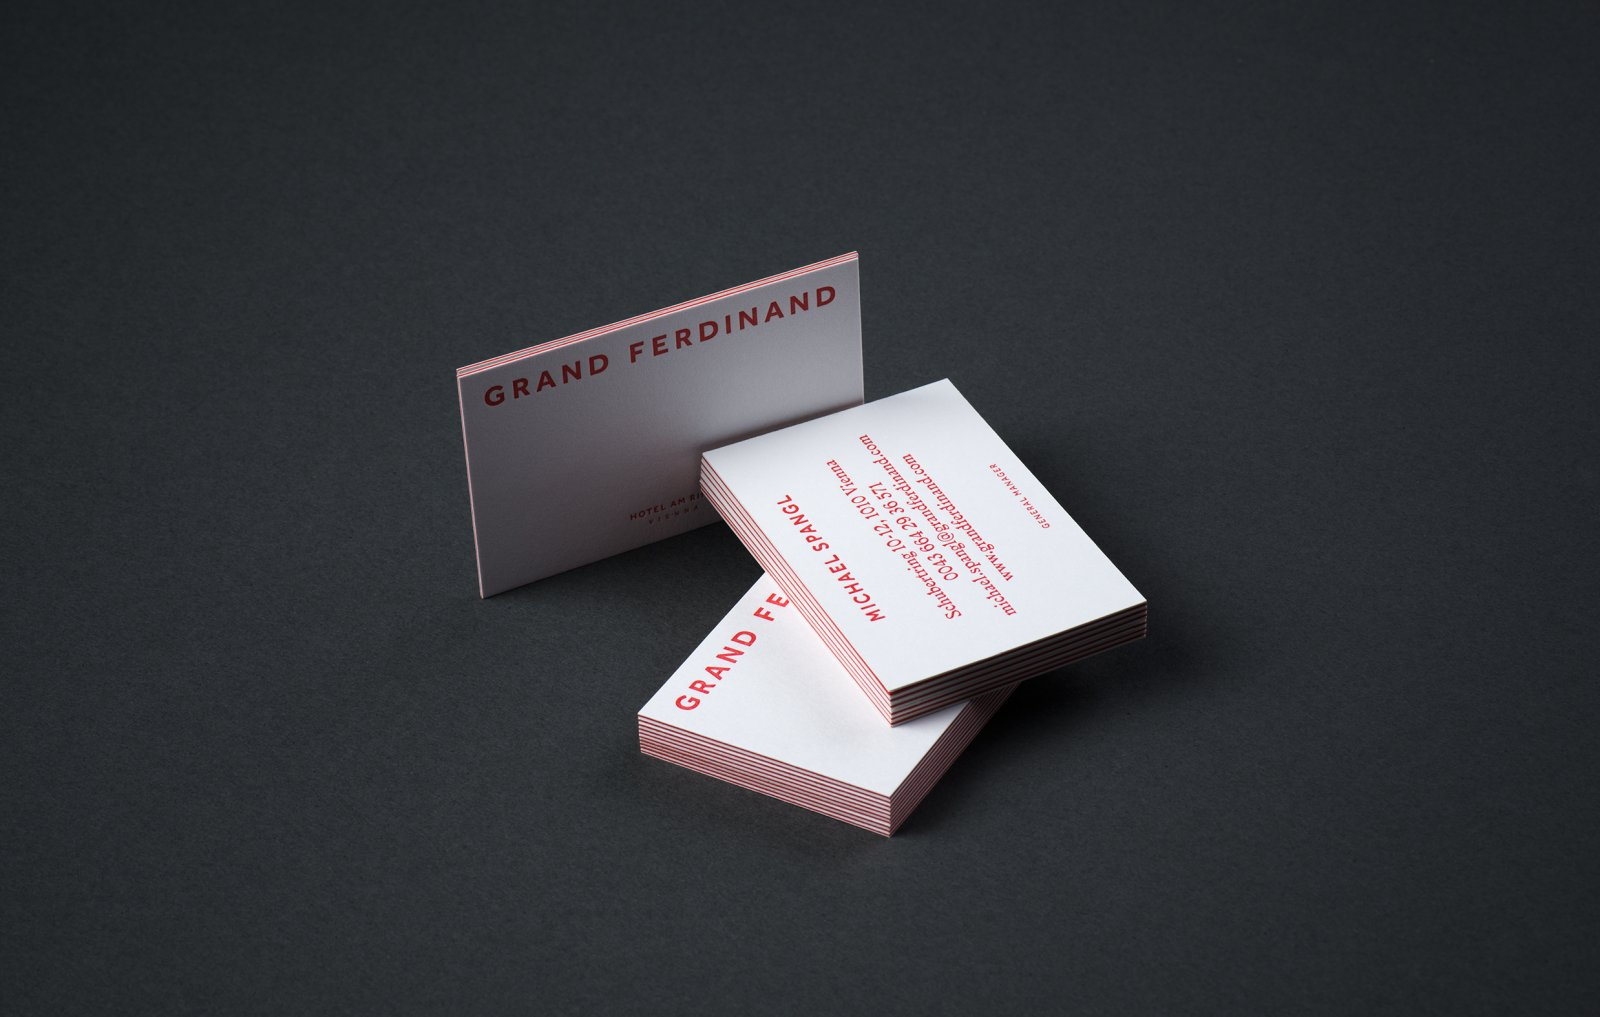 Duplex business card for hotel Grand Ferdinand designed by Moodley